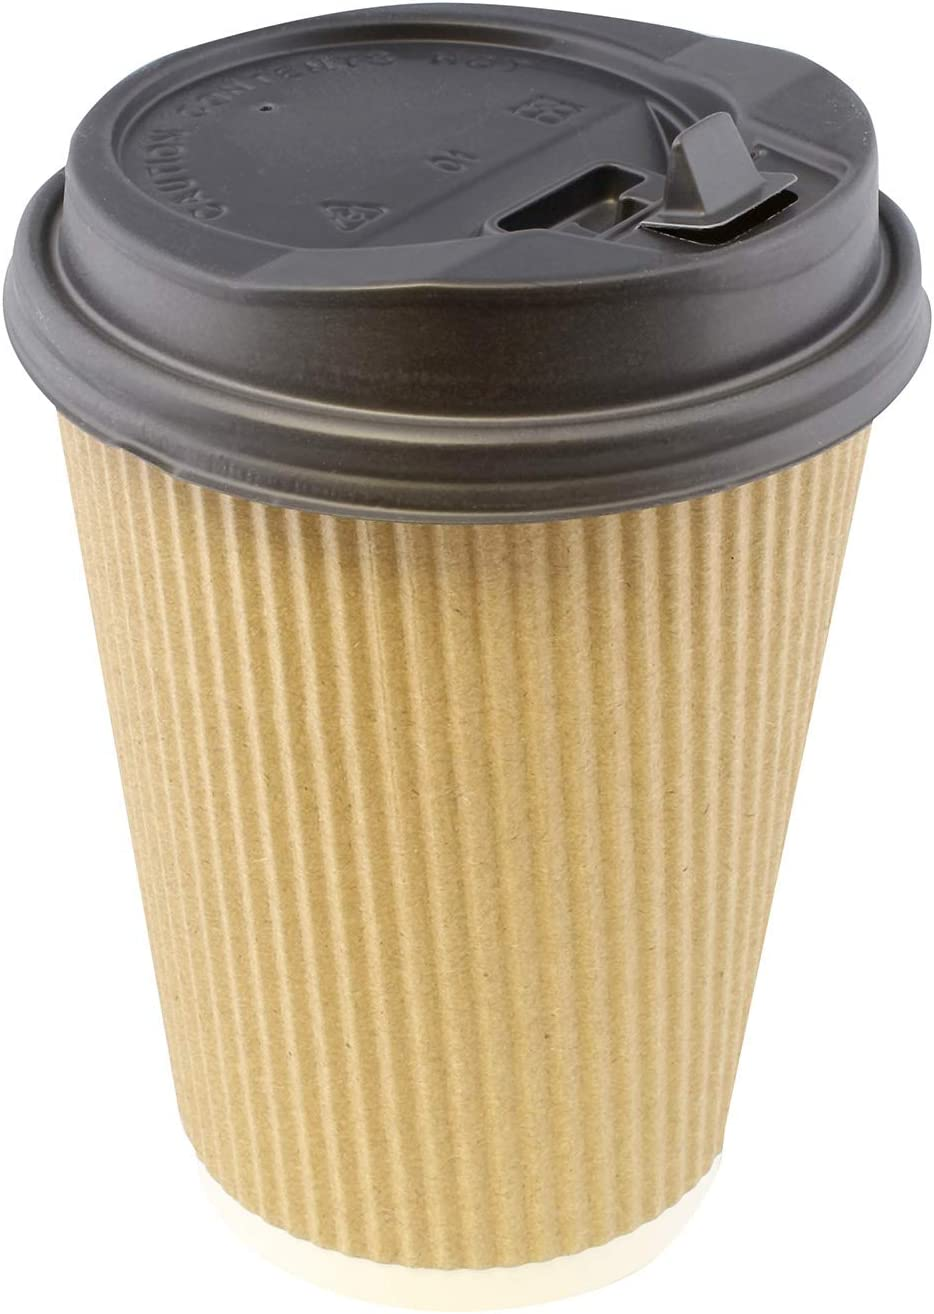 Lot45 Disposable Paper Cups with Lids, 100 Pack - 12 oz Coffee Cups To Go Expresso Cups with Rippled Sleeve in Brown